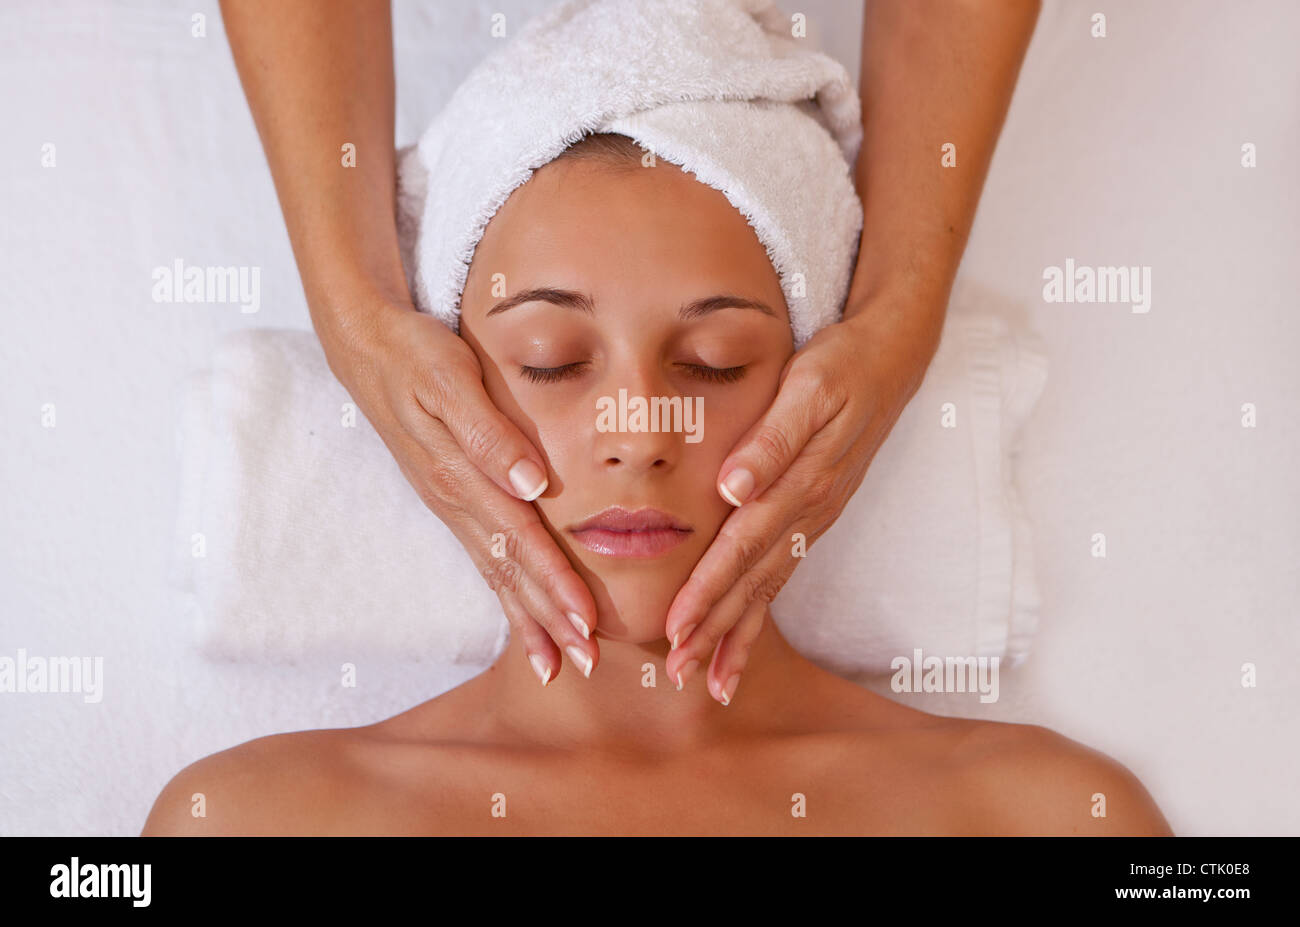 woman getting relaxing head or face massage - Stock Image